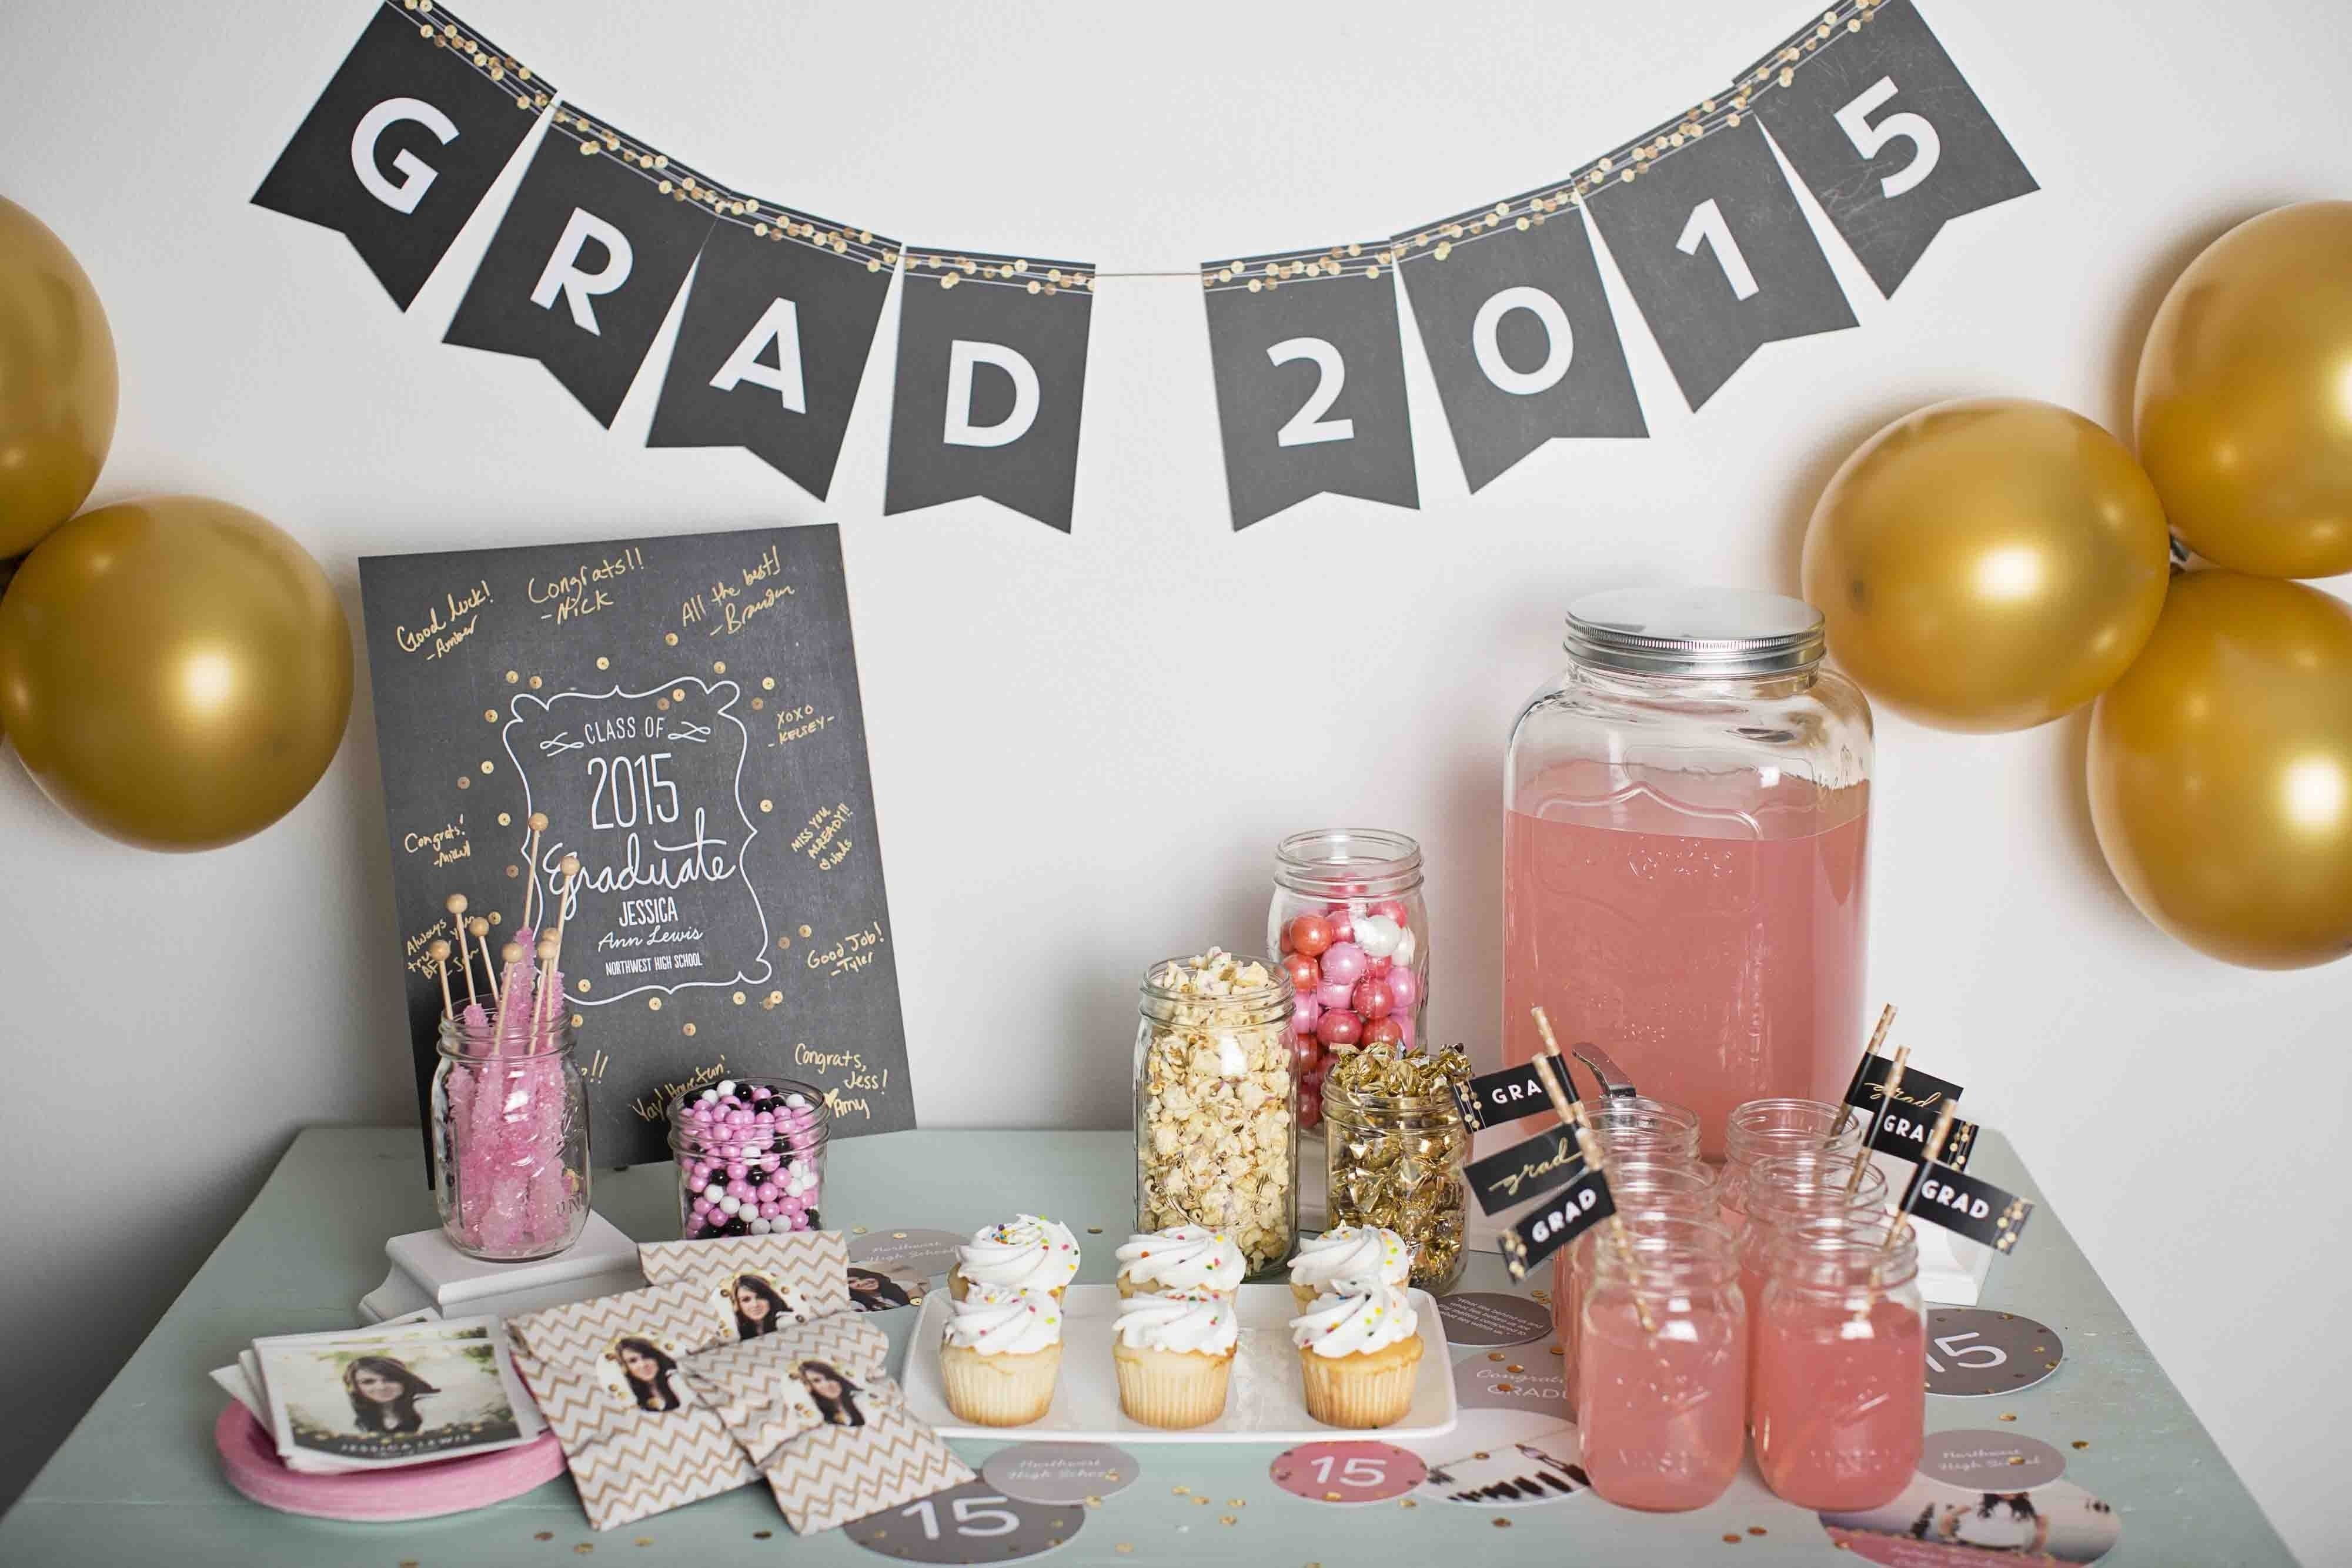 sequin-inspired graduation party ideas | graduation photo displays